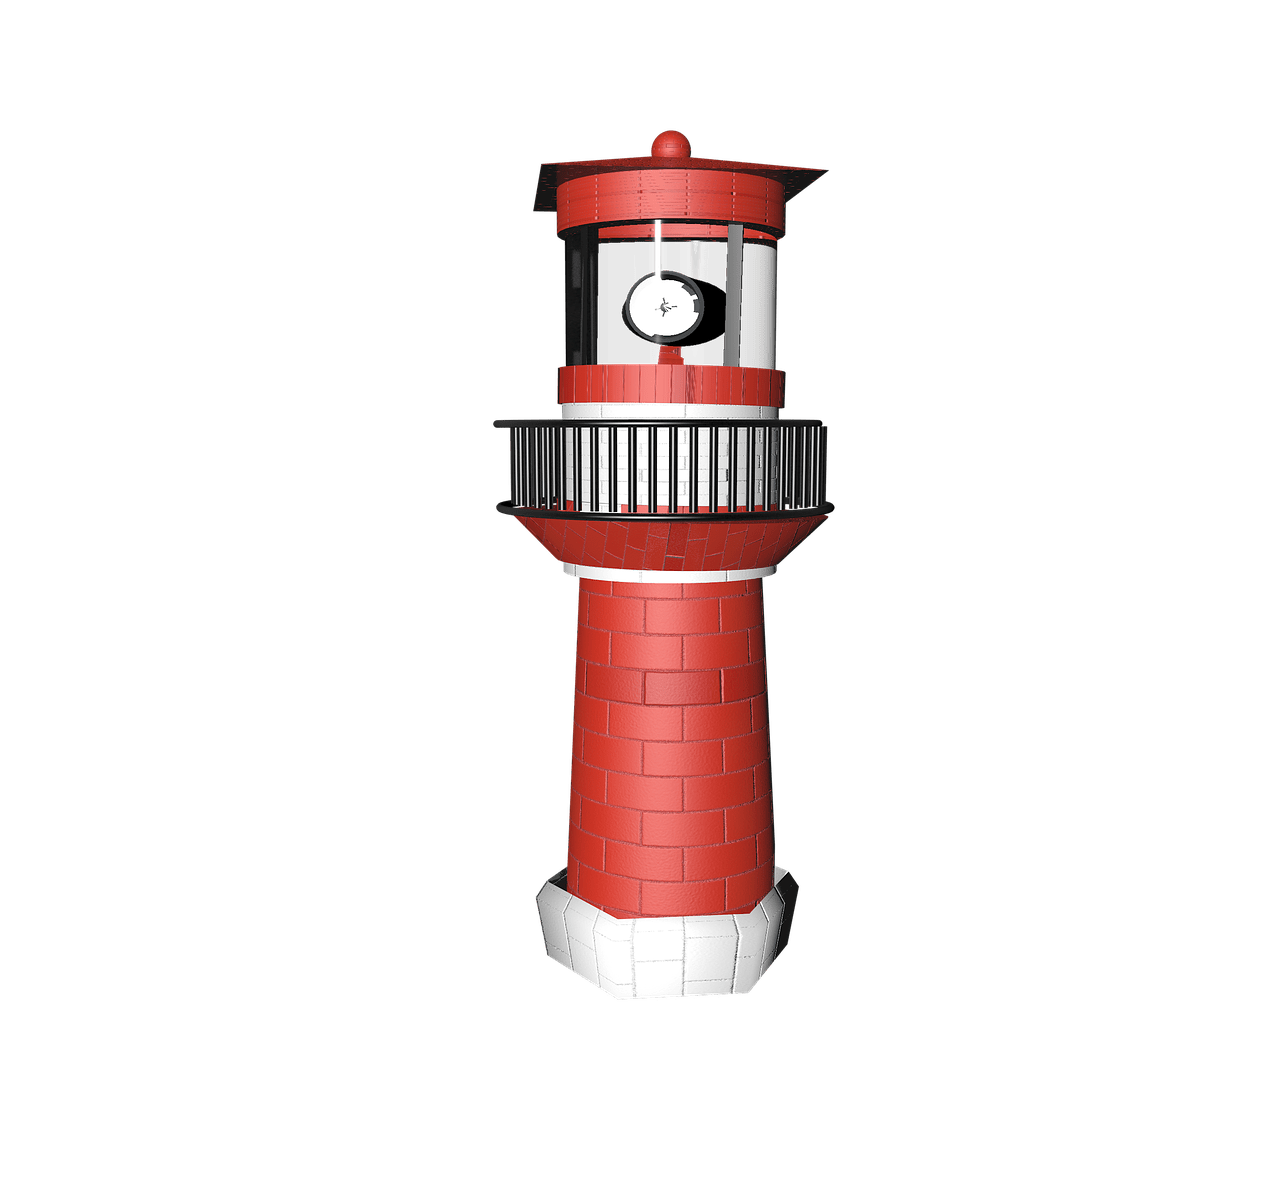 Square clipart lighthouse. Red transparent png stickpng